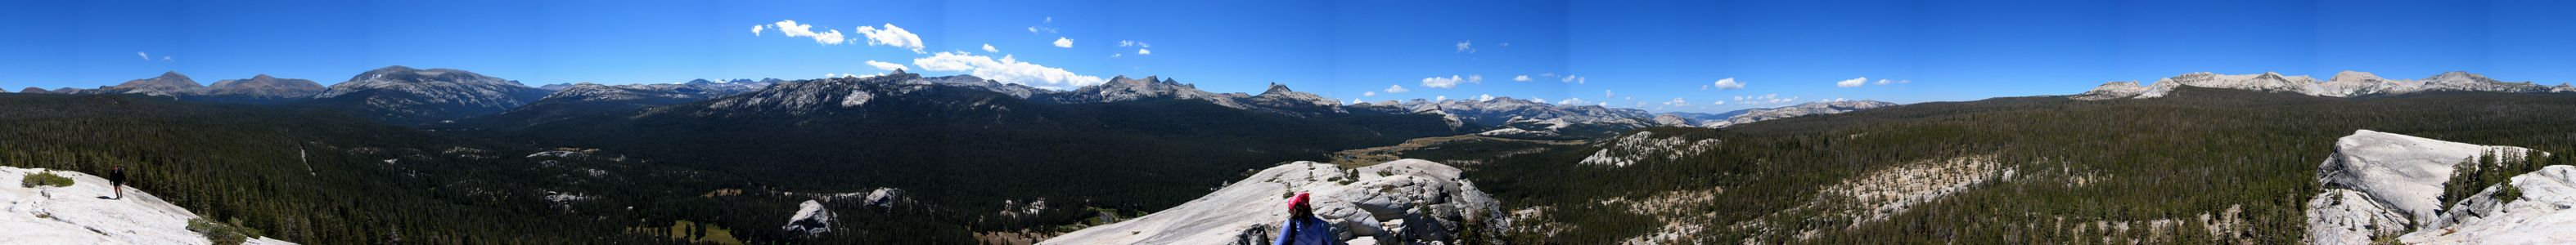 Lembert Dome Panorama - 9/2005